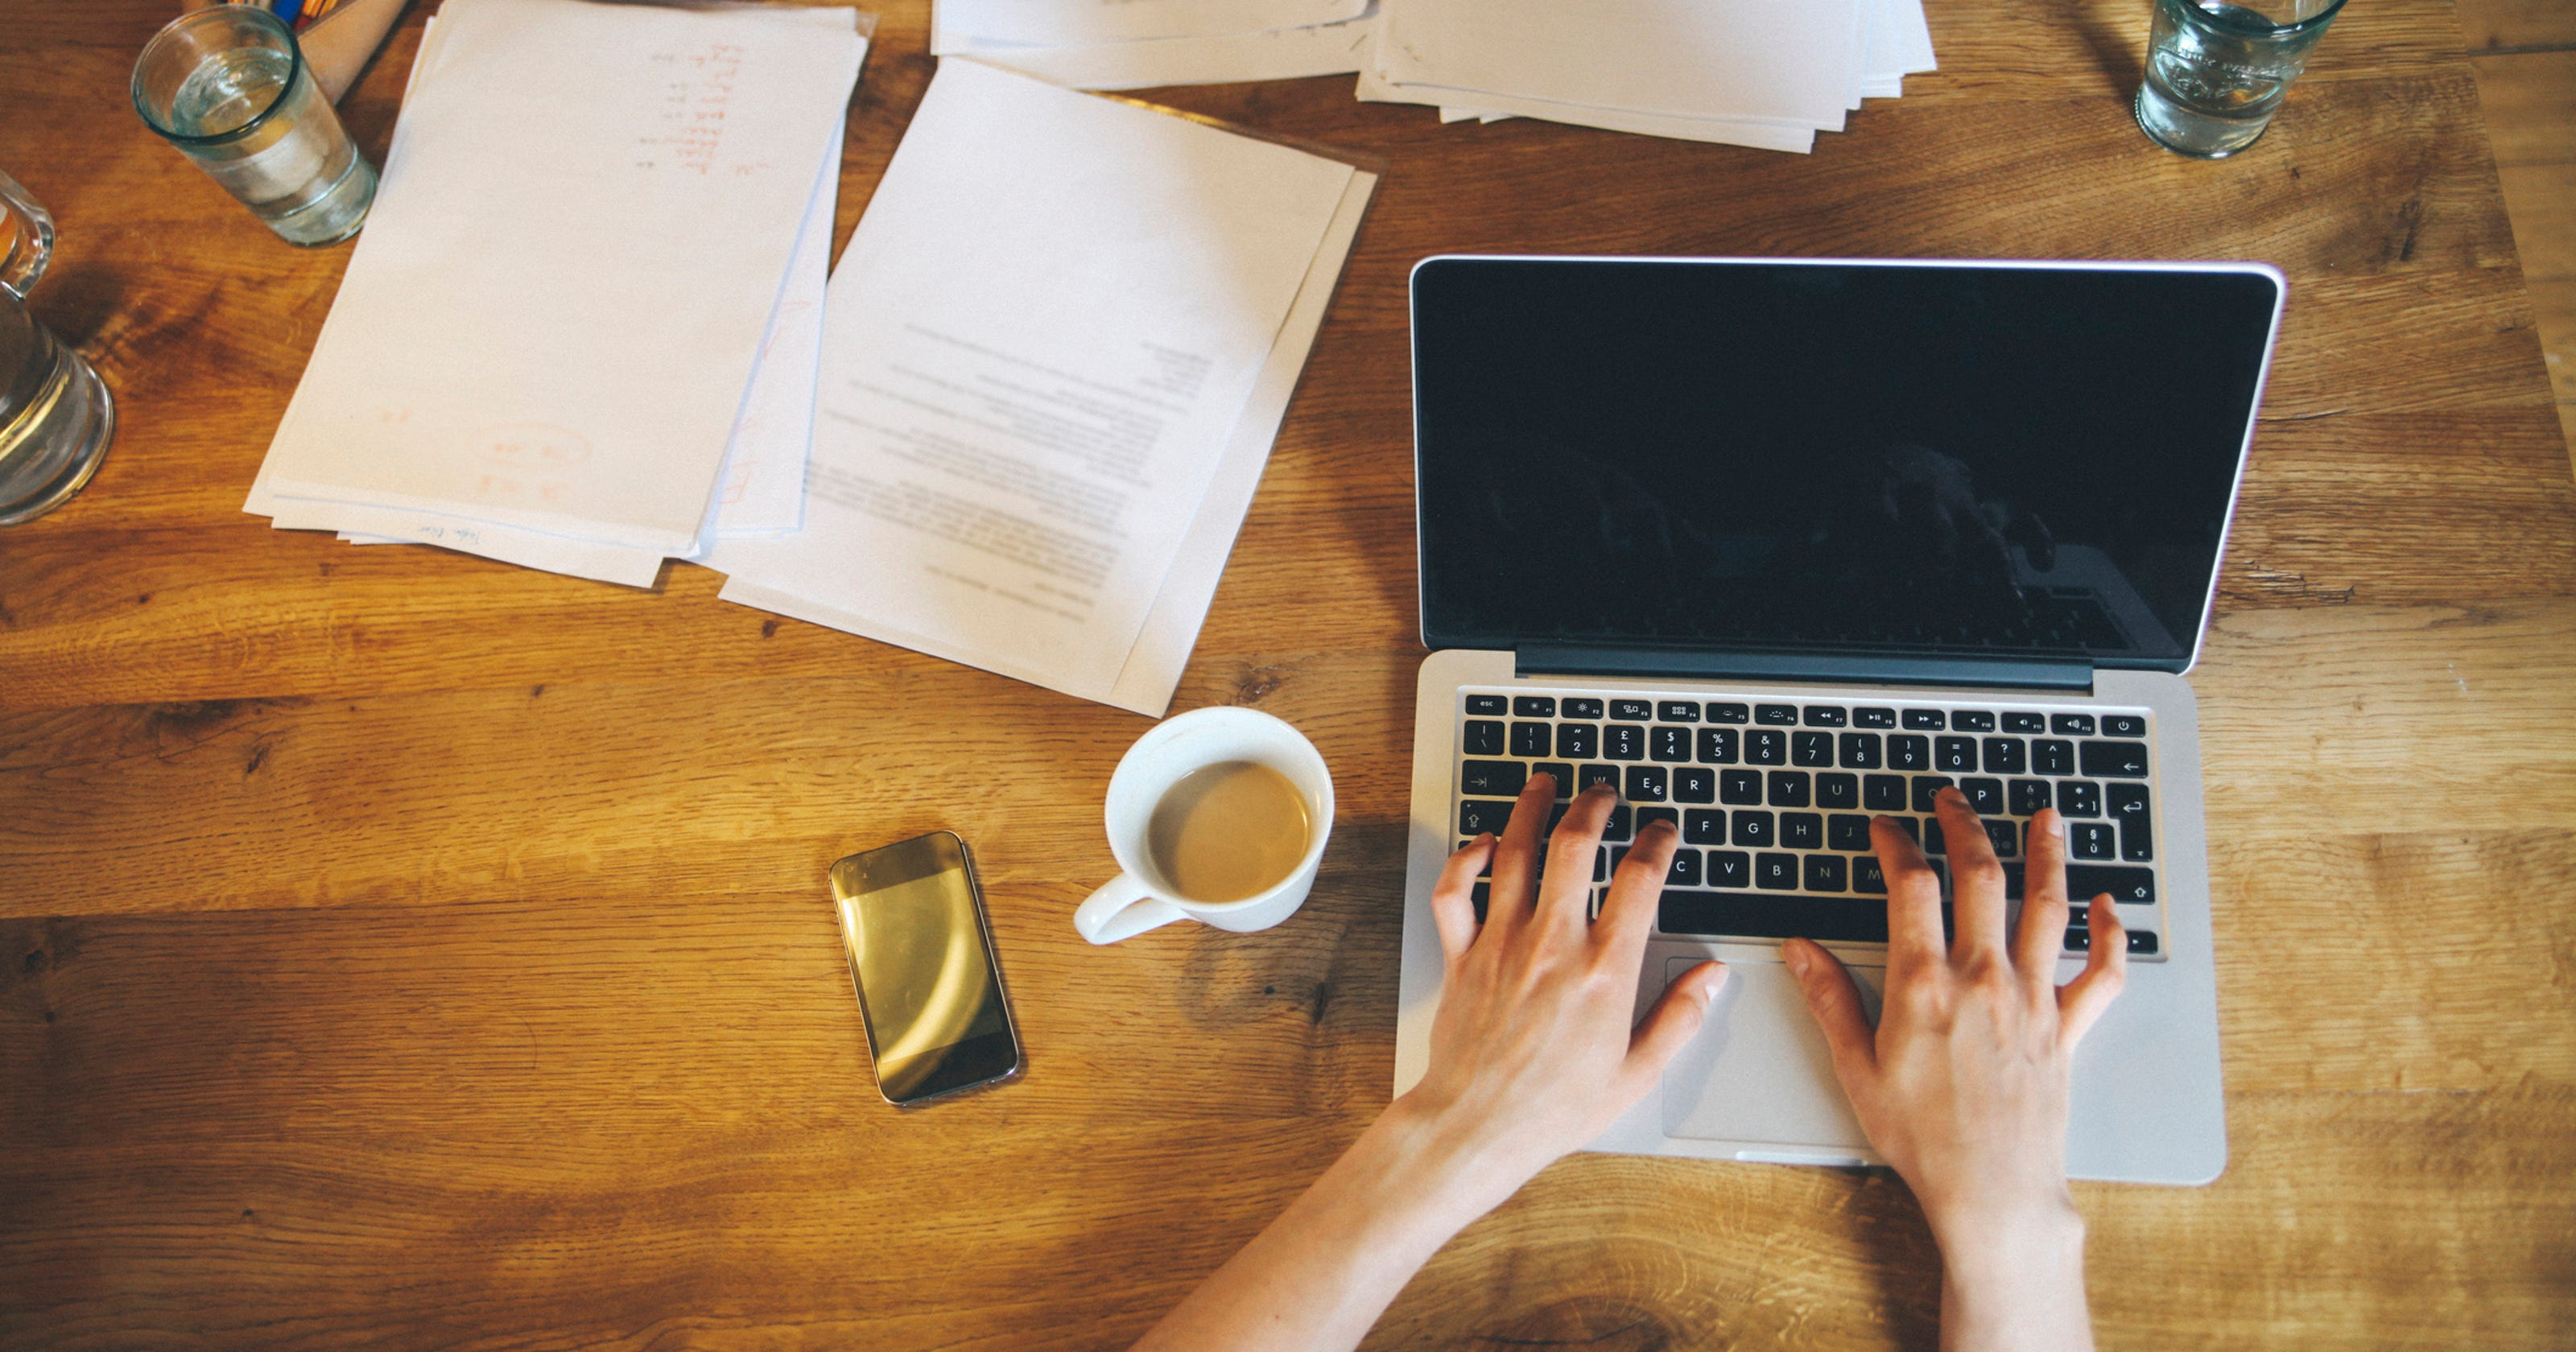 Get your gig: Here are the 9 best sites to visit for freelance work